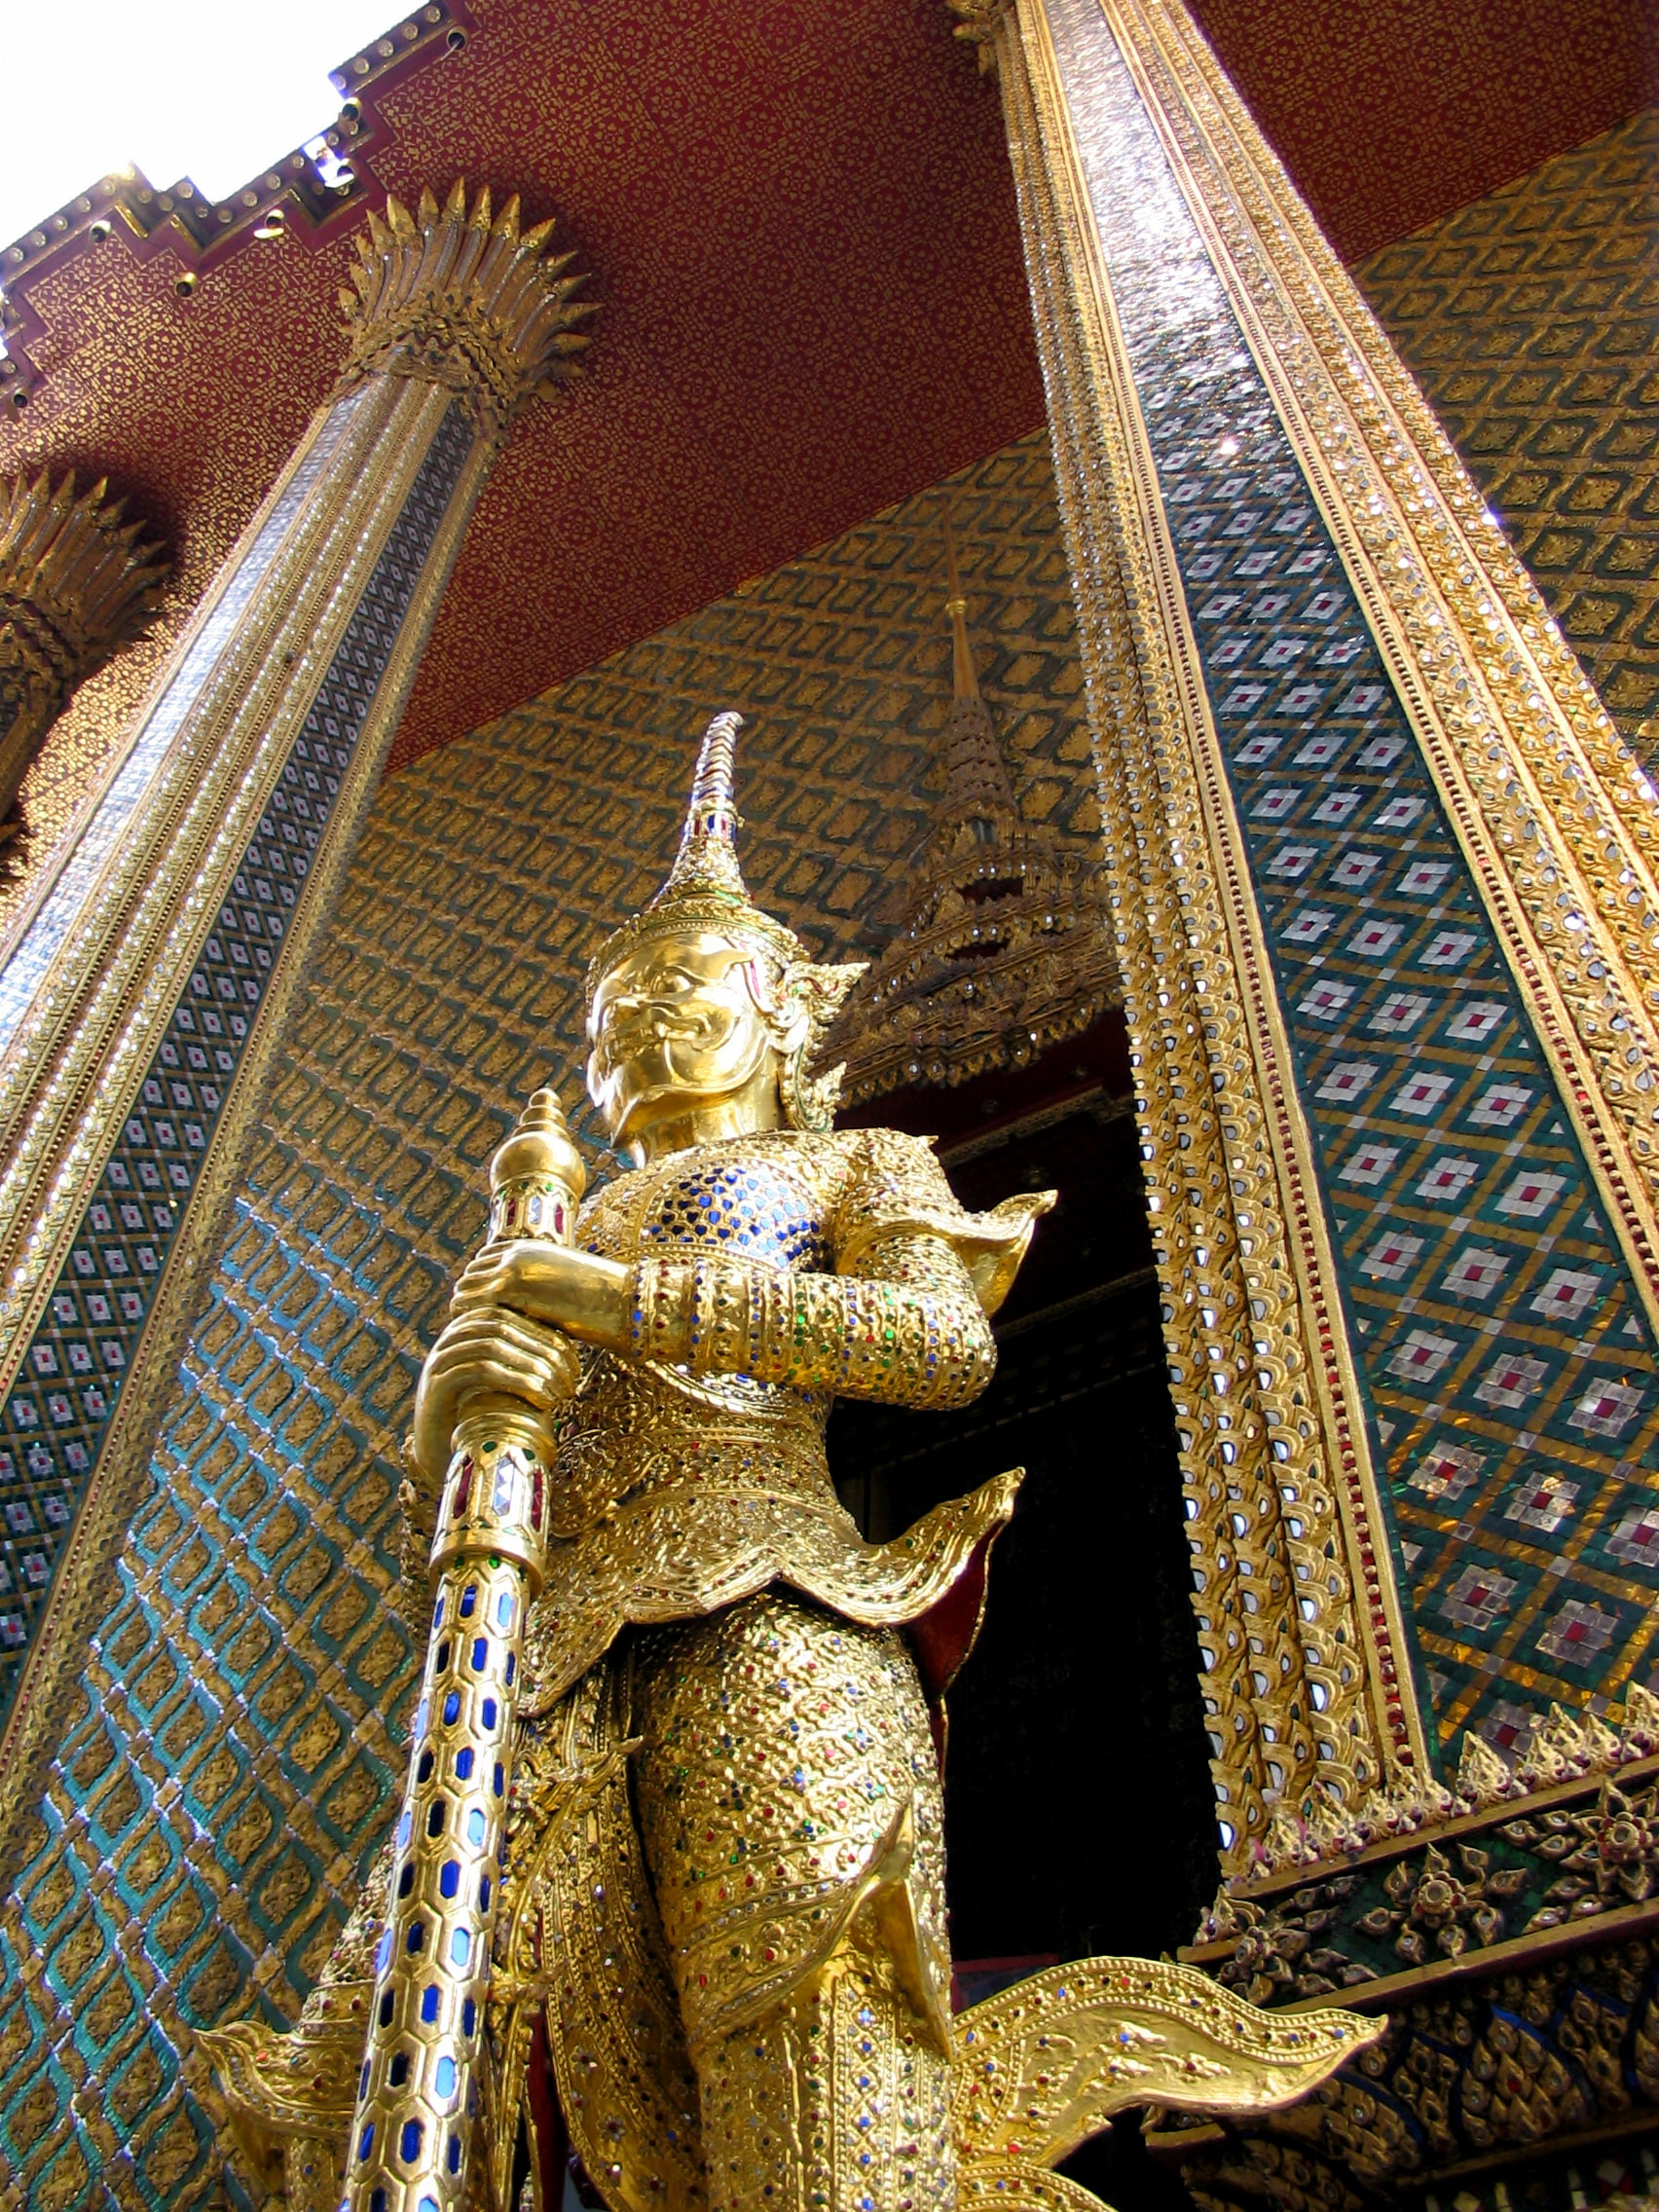 must-sees in Thailand